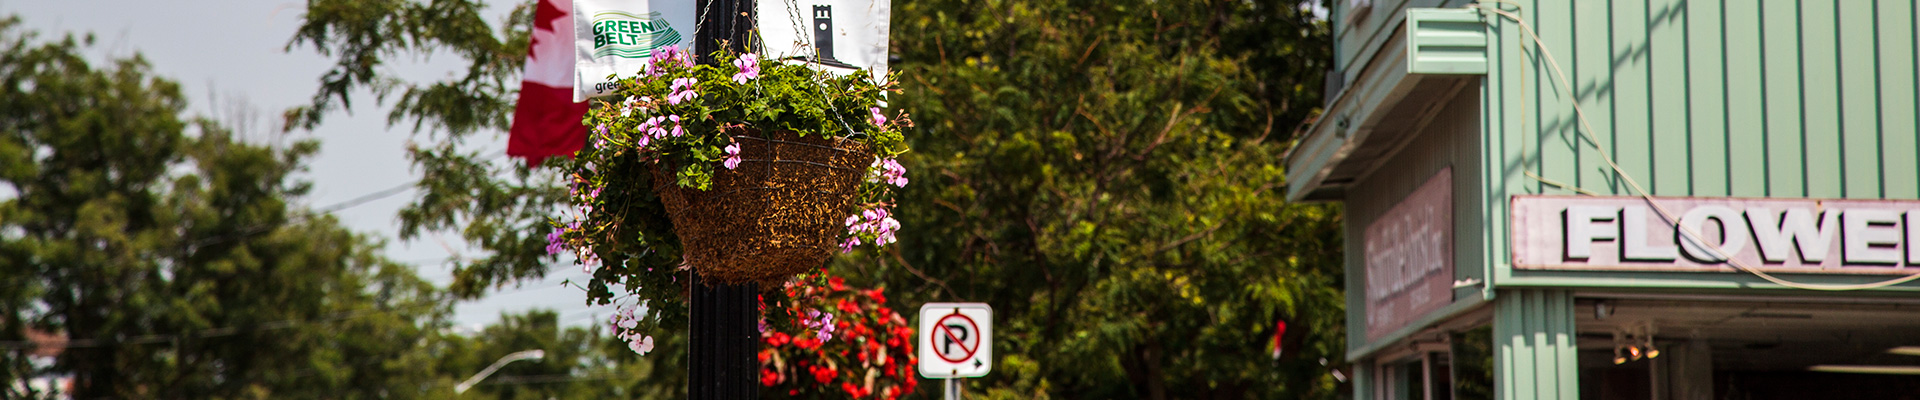 Photo-MainSt-Flowers-2012-07-06-Whitchurch-Stoufville-014.jpg